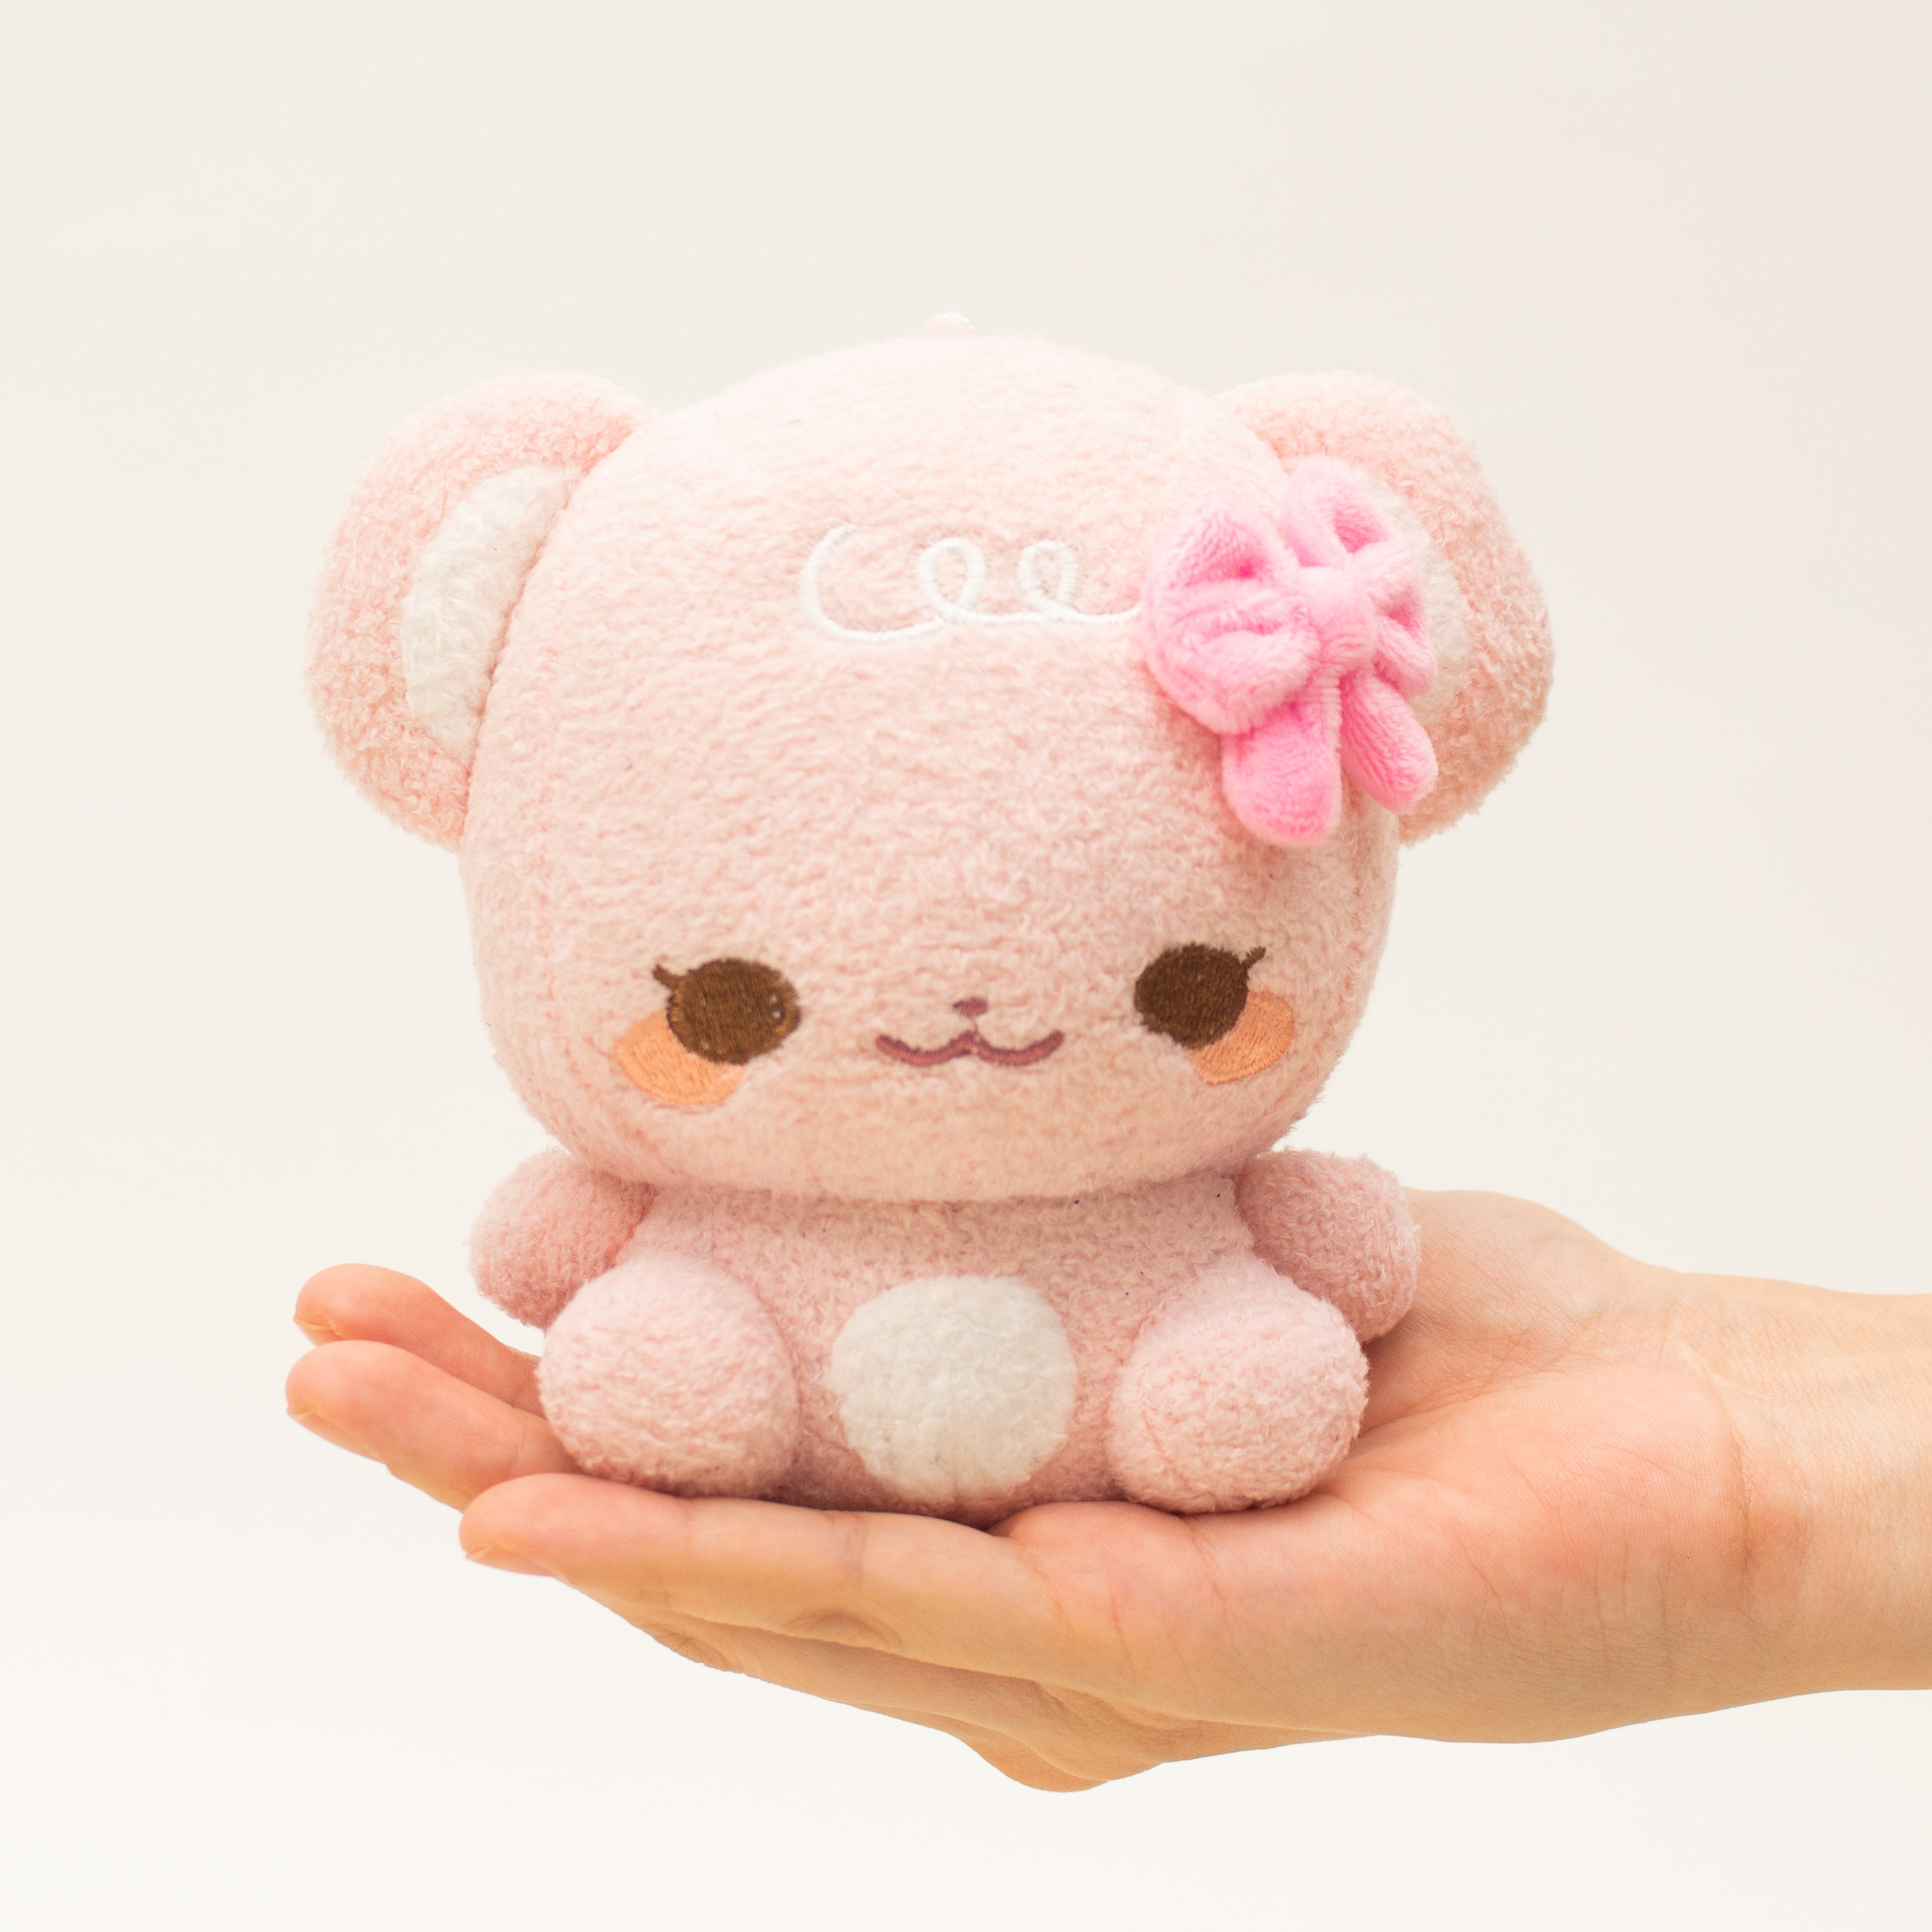 SugarCubs Little Plush toy